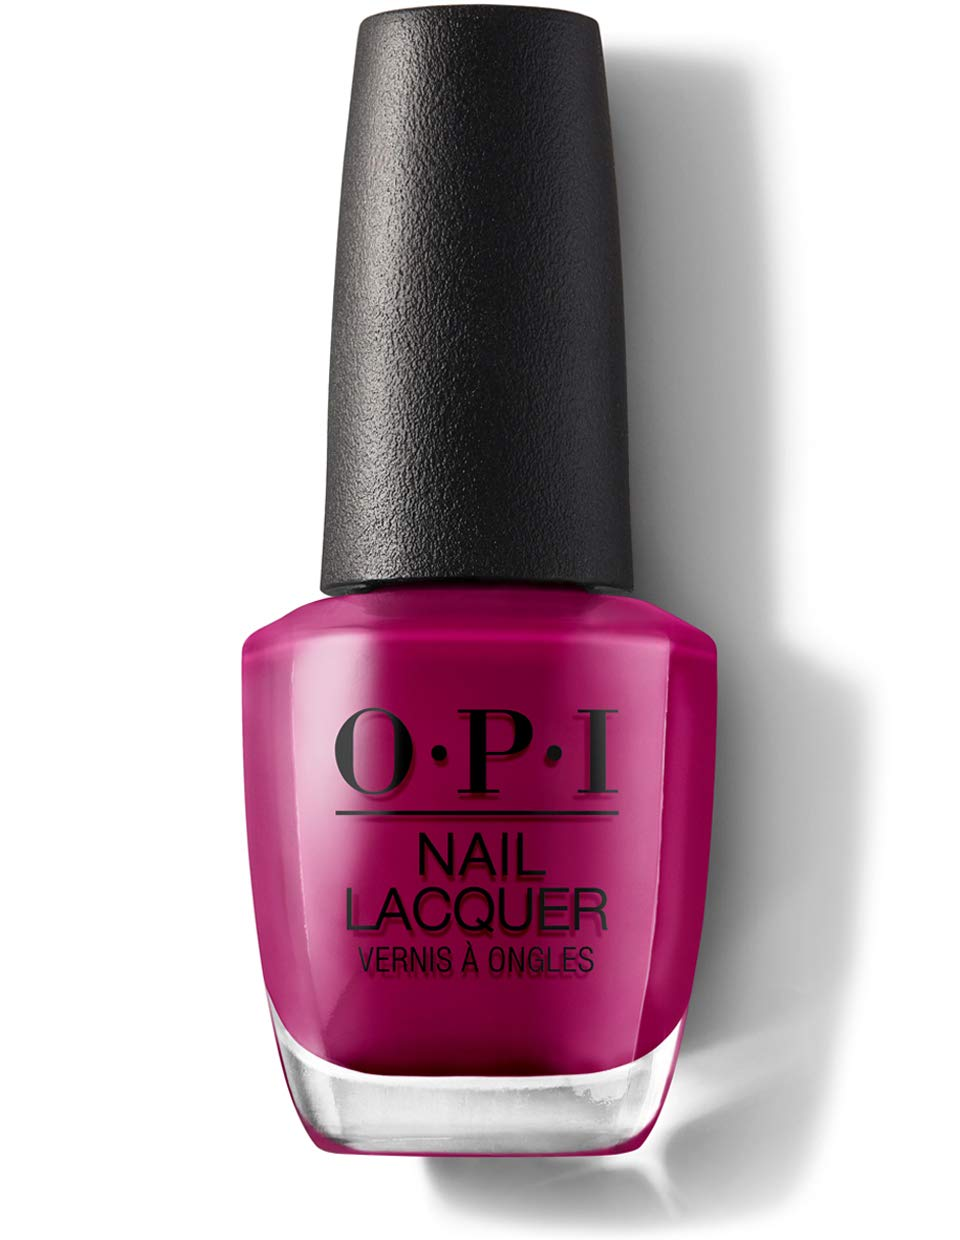 This is how autumn does hot pink. The rich jewel-toned magenta is perfect for gals who don't fully want to give up bright summery shades just yet.BUY IT: $10.50; amazon.com